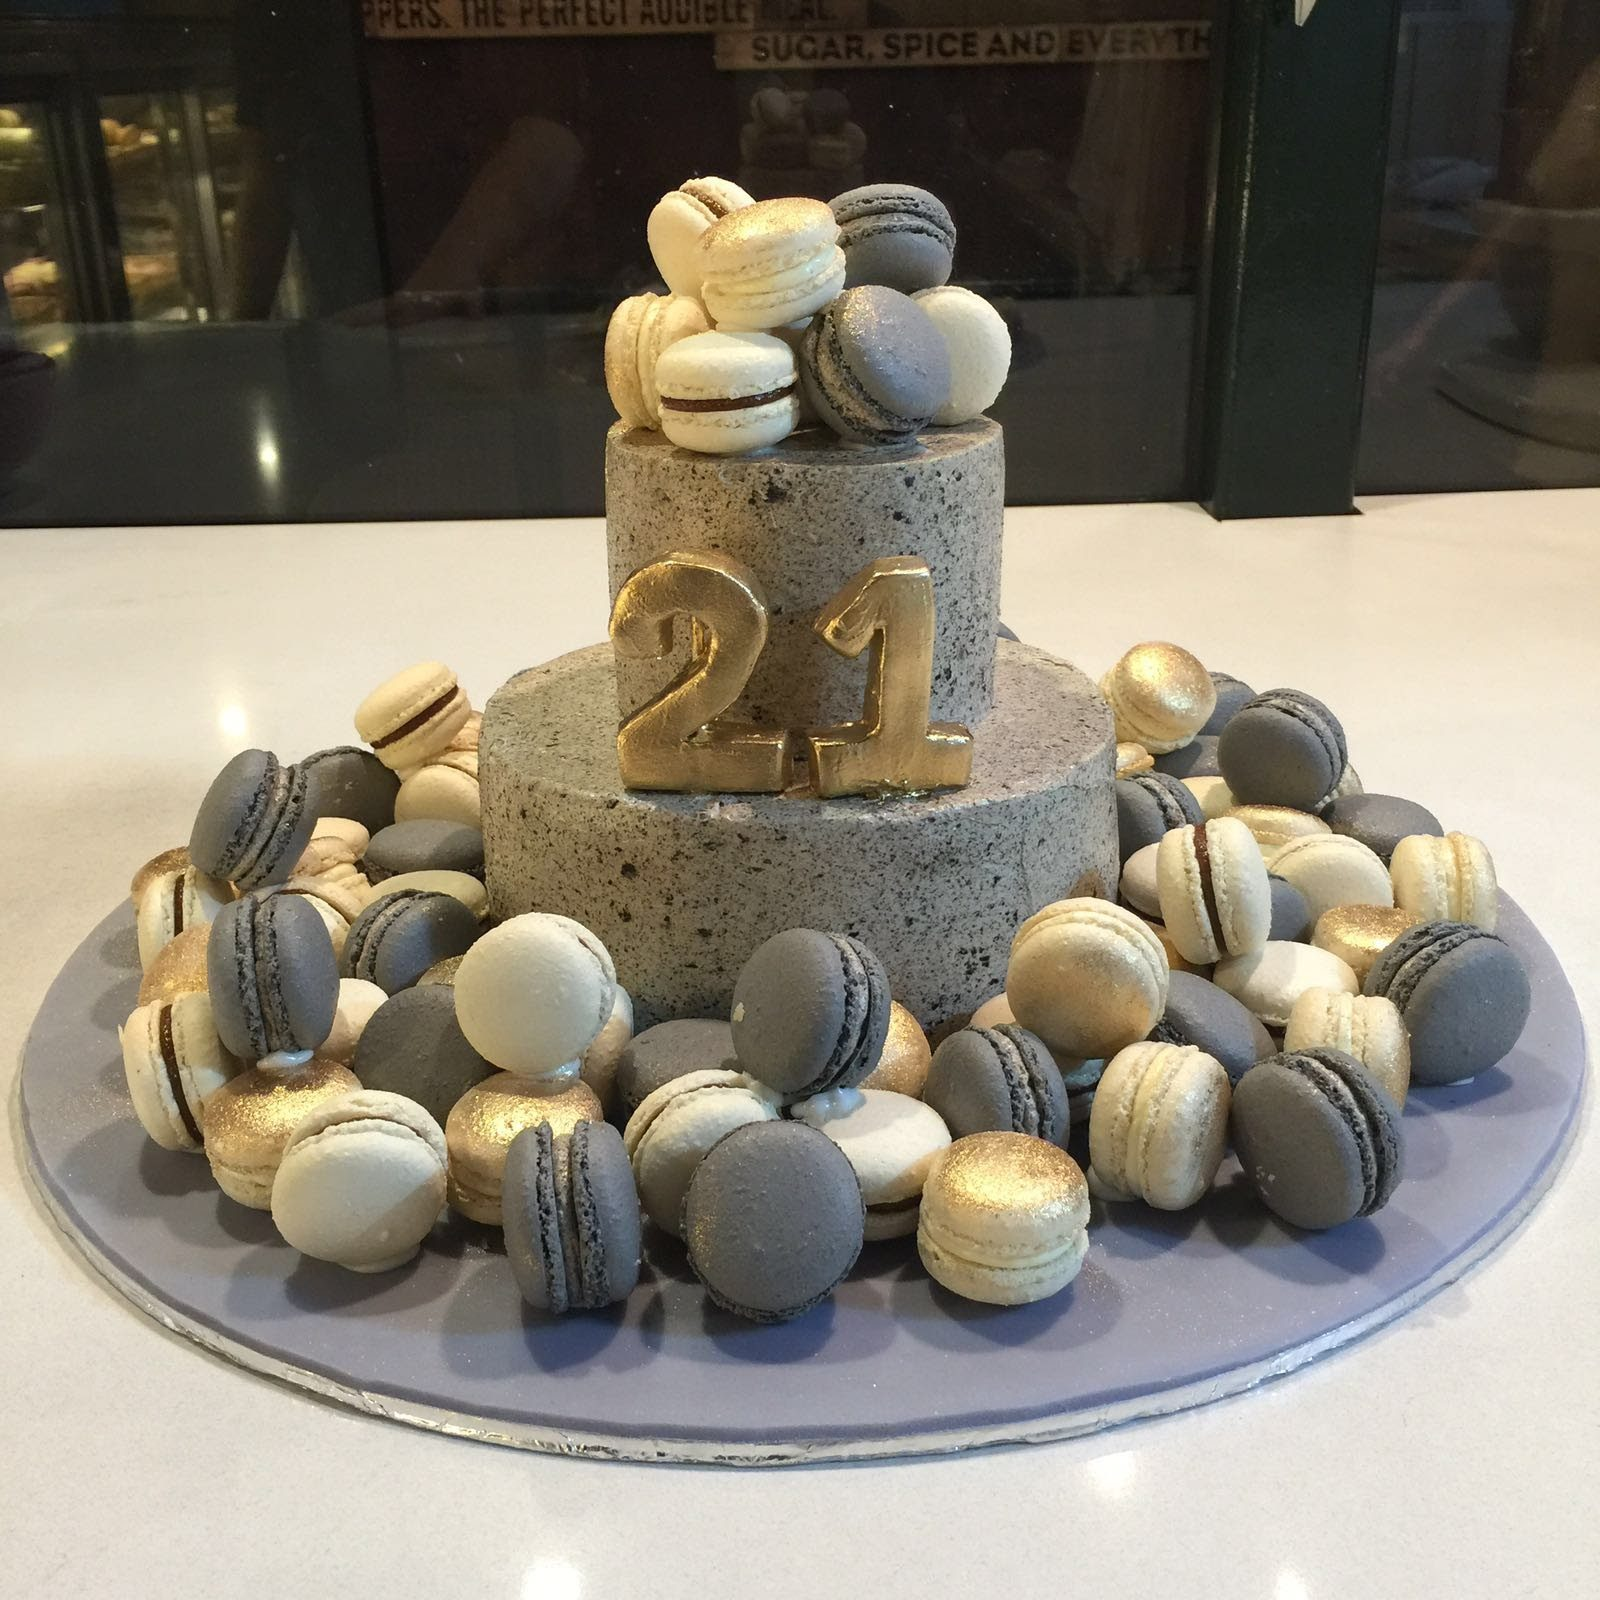 A luxe looking birthday cake. Made by: Bonheur Patisserie Singapore - Recommend.sg